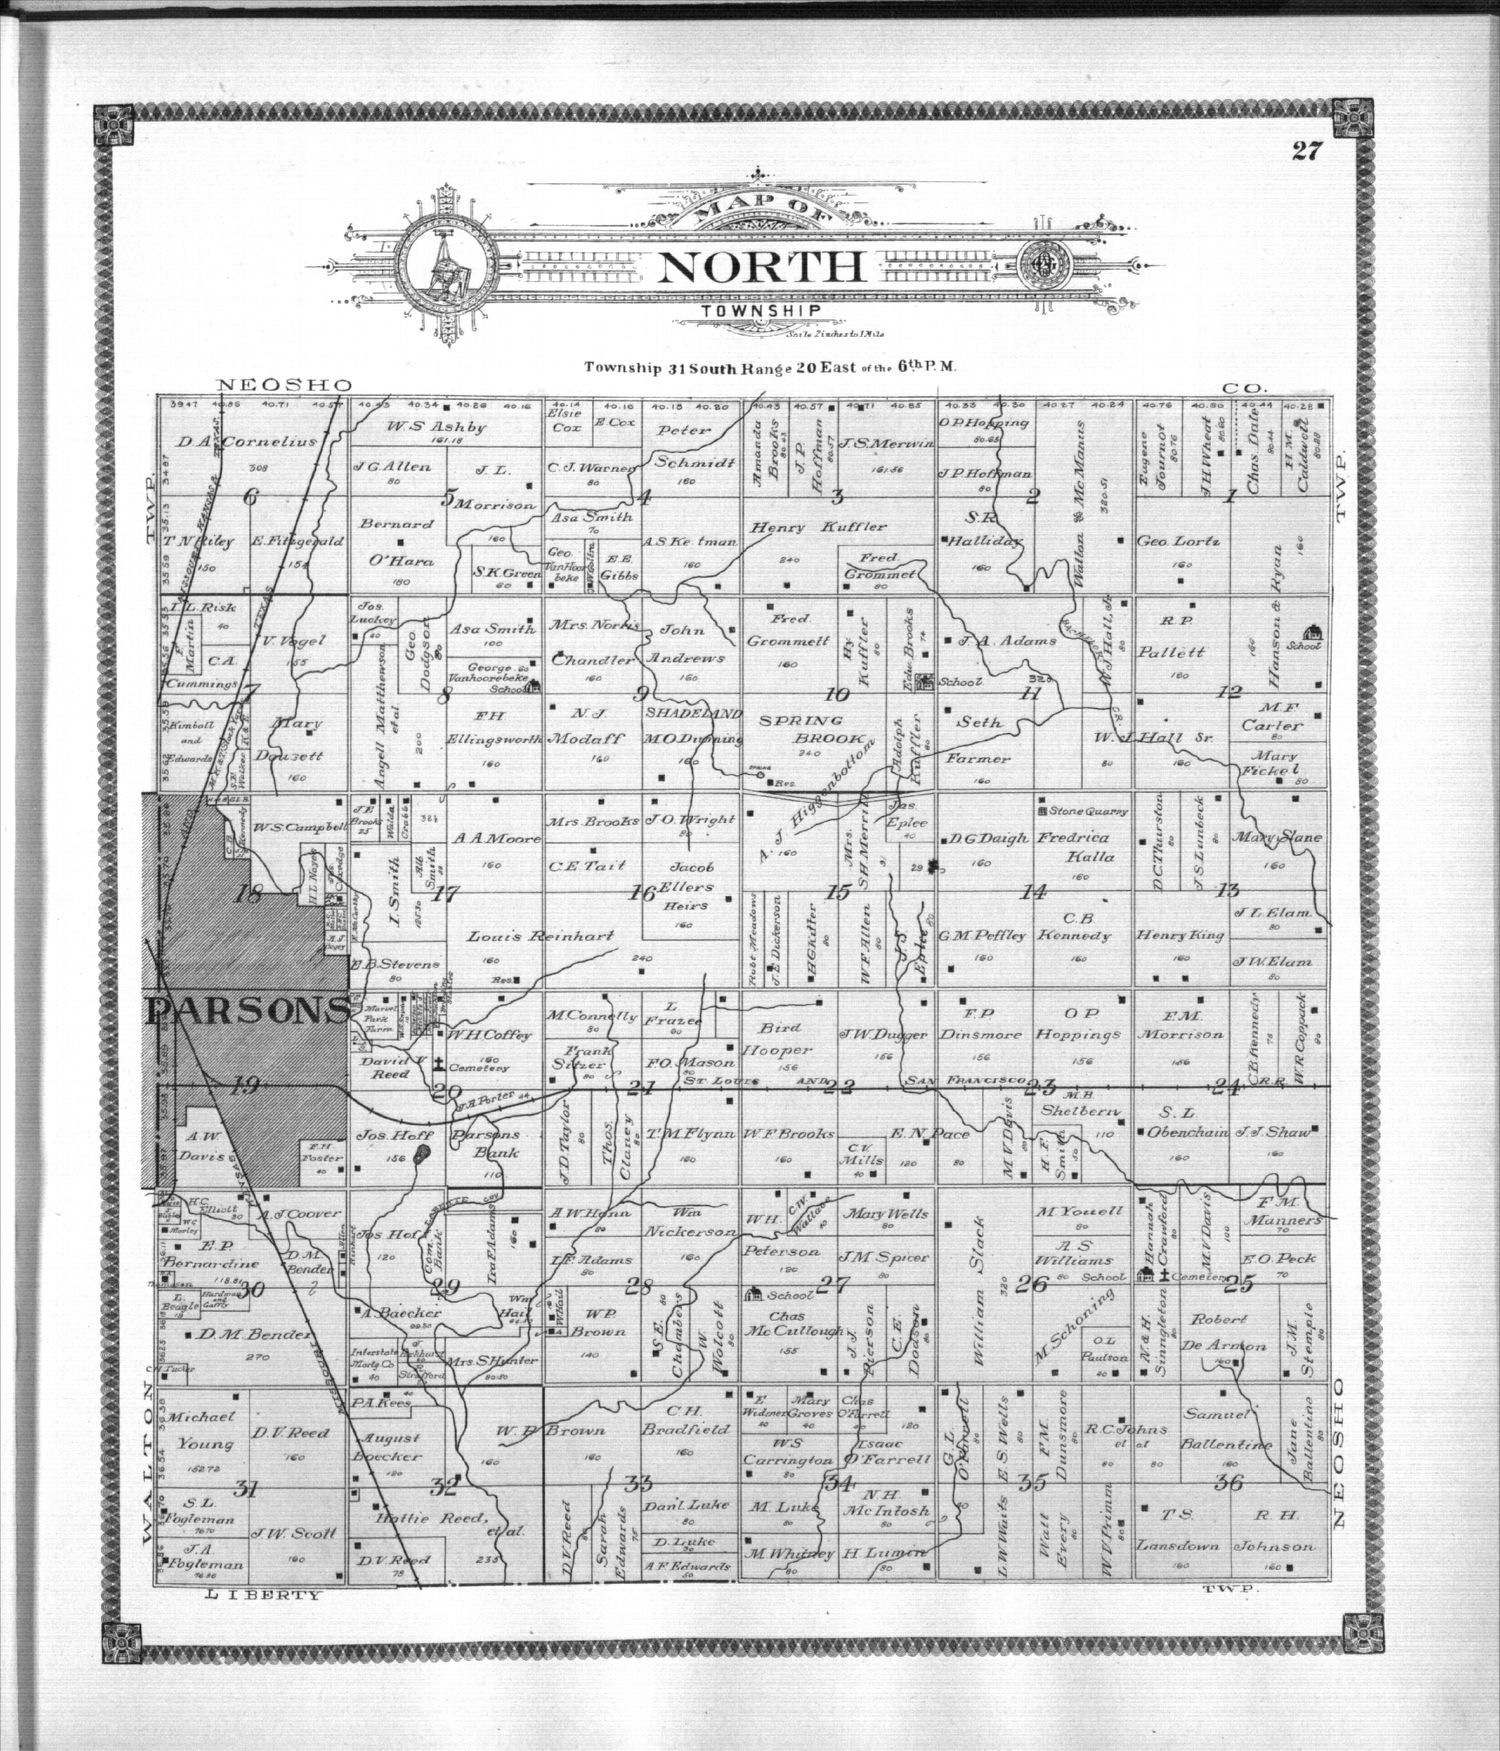 Standard atlas of Labette County, Kansas - 27